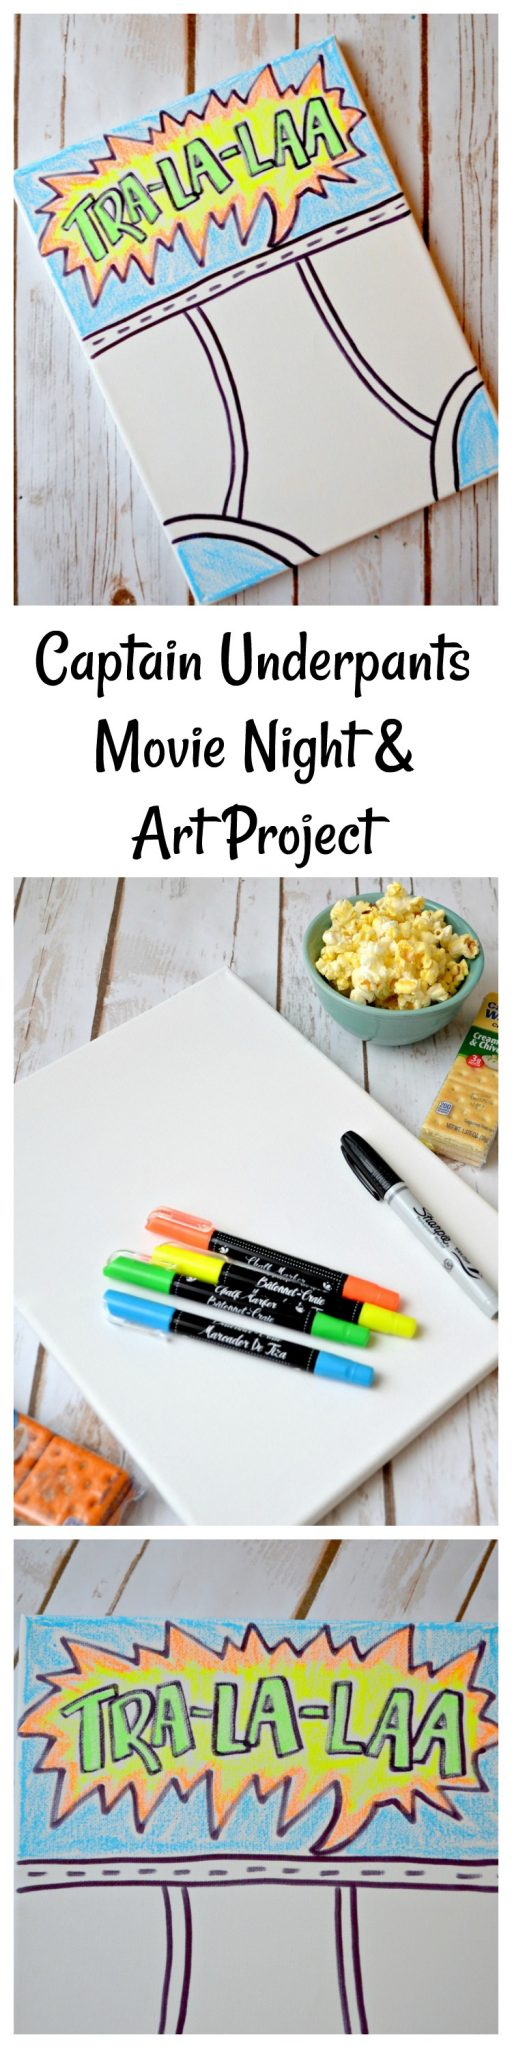 Captain Underpants Movie Night & Art Project